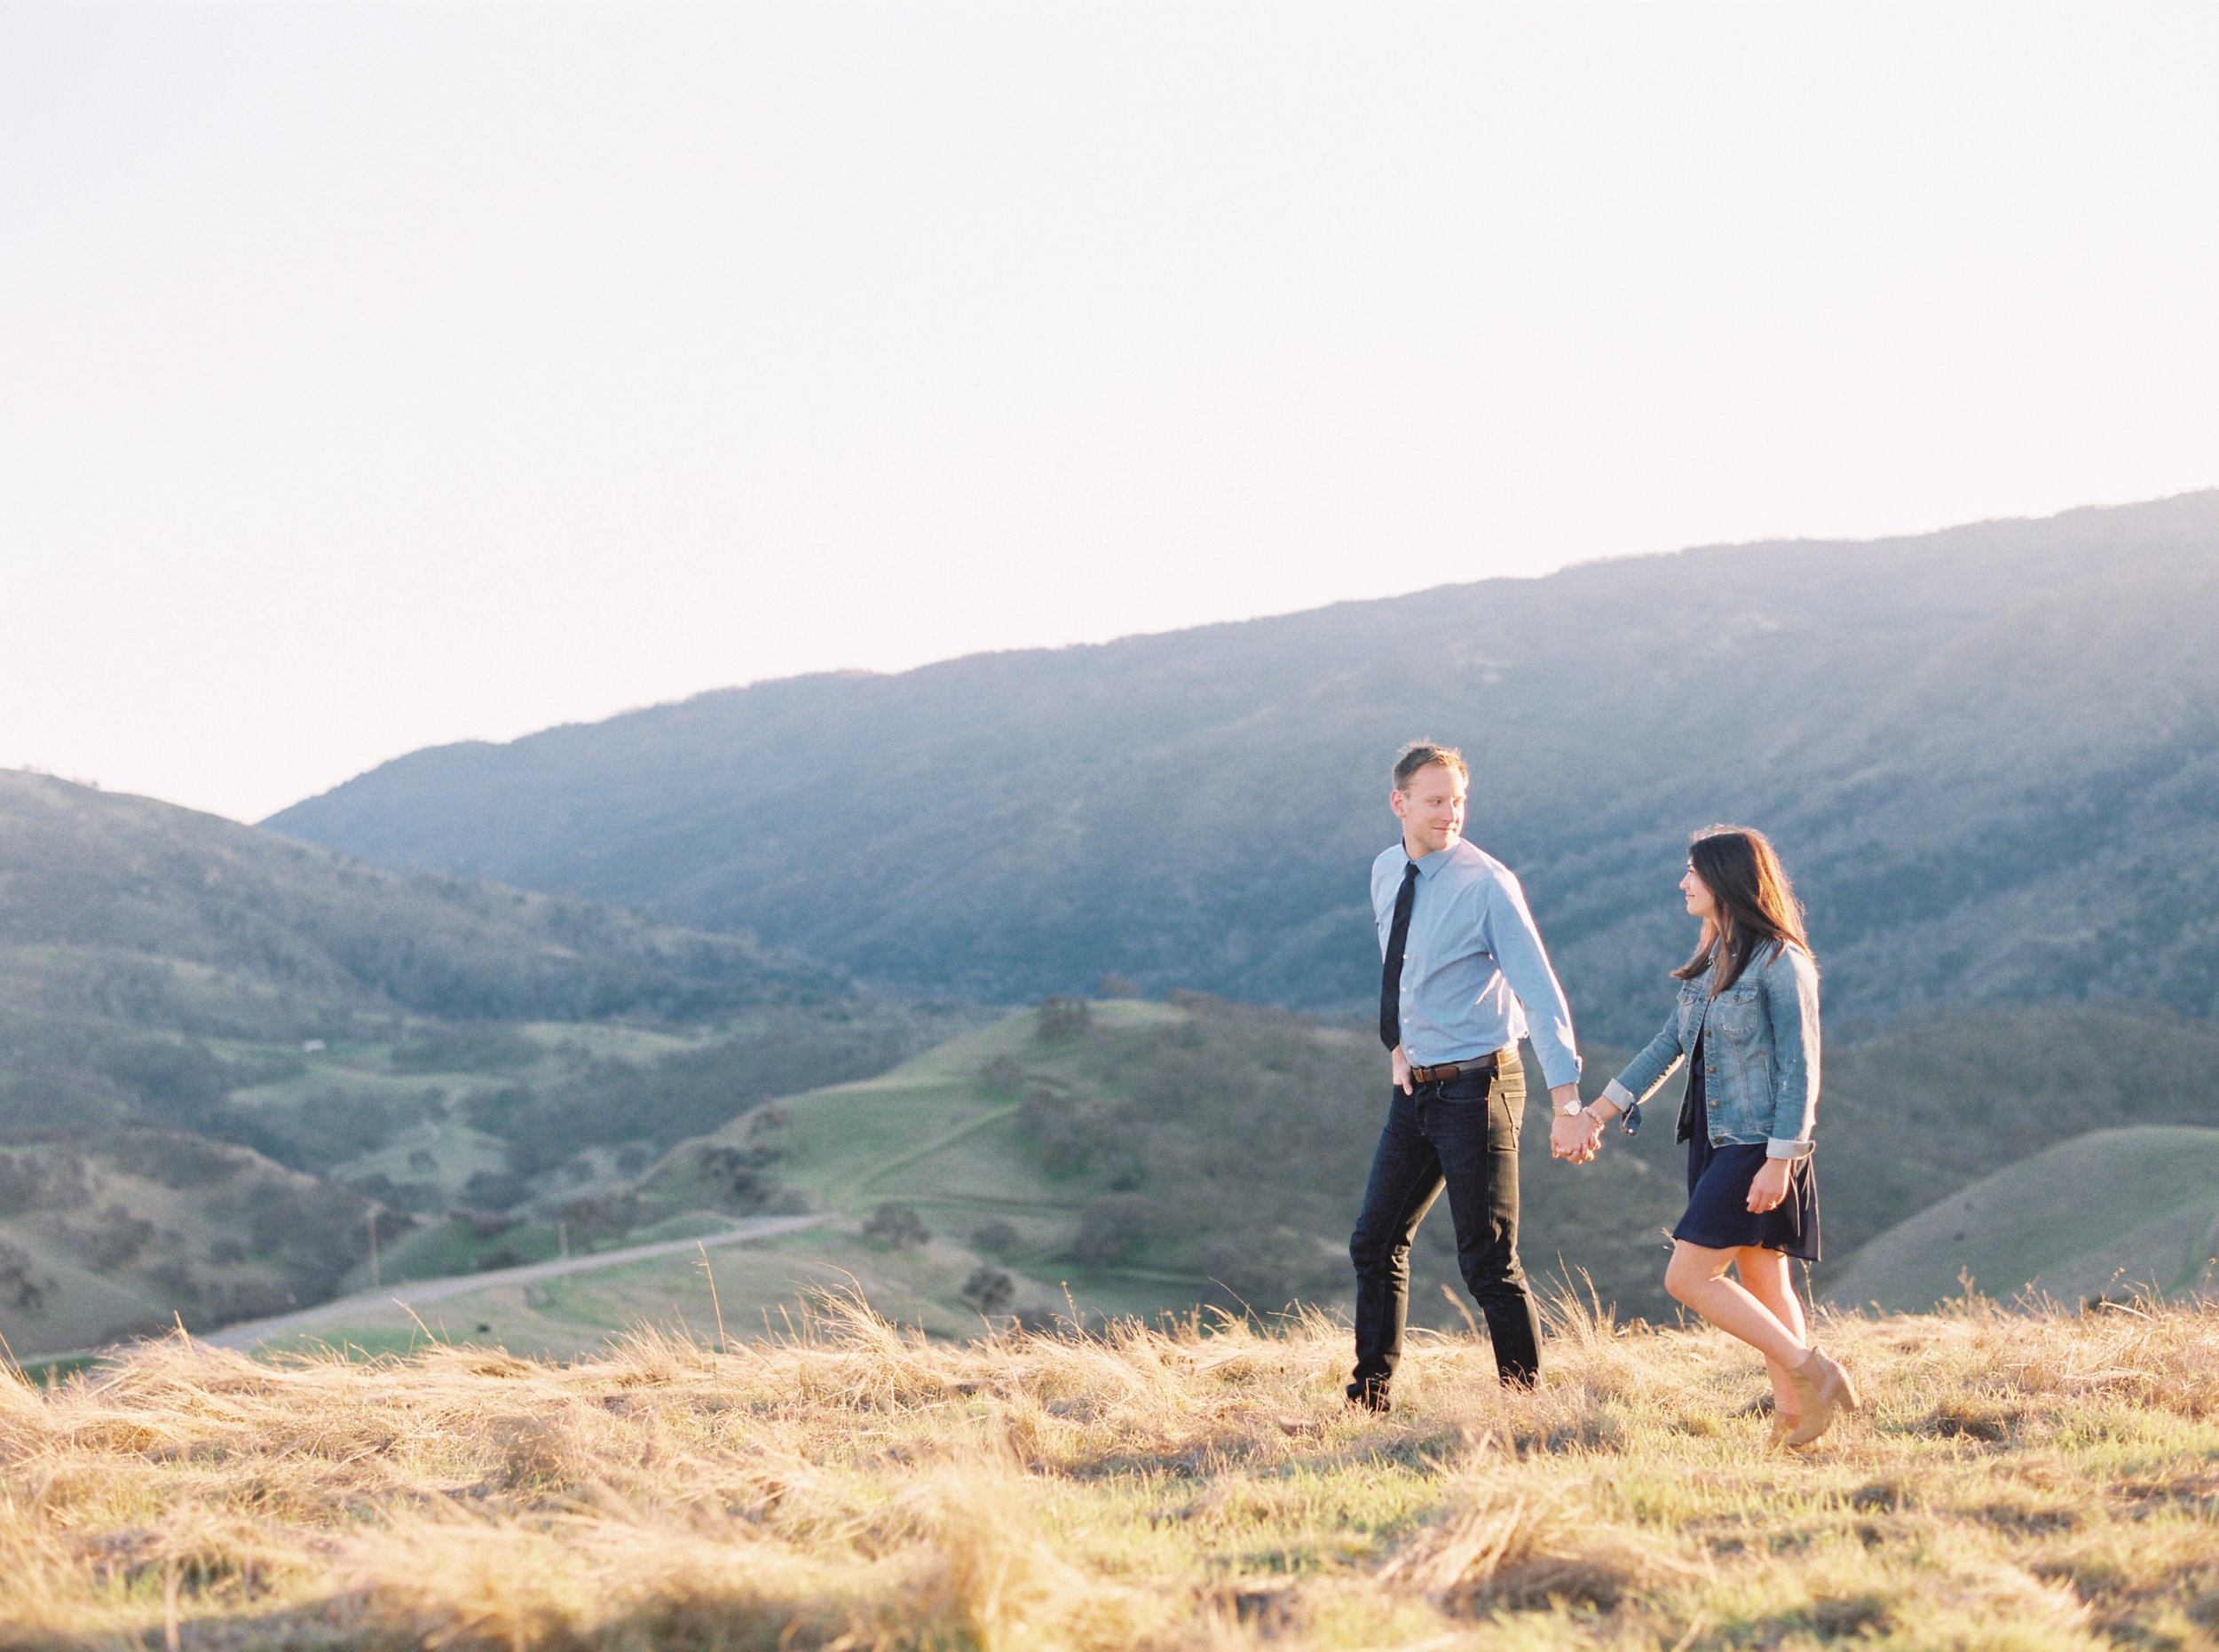 livermore-engagement-photography-at-del-valle-51.jpg